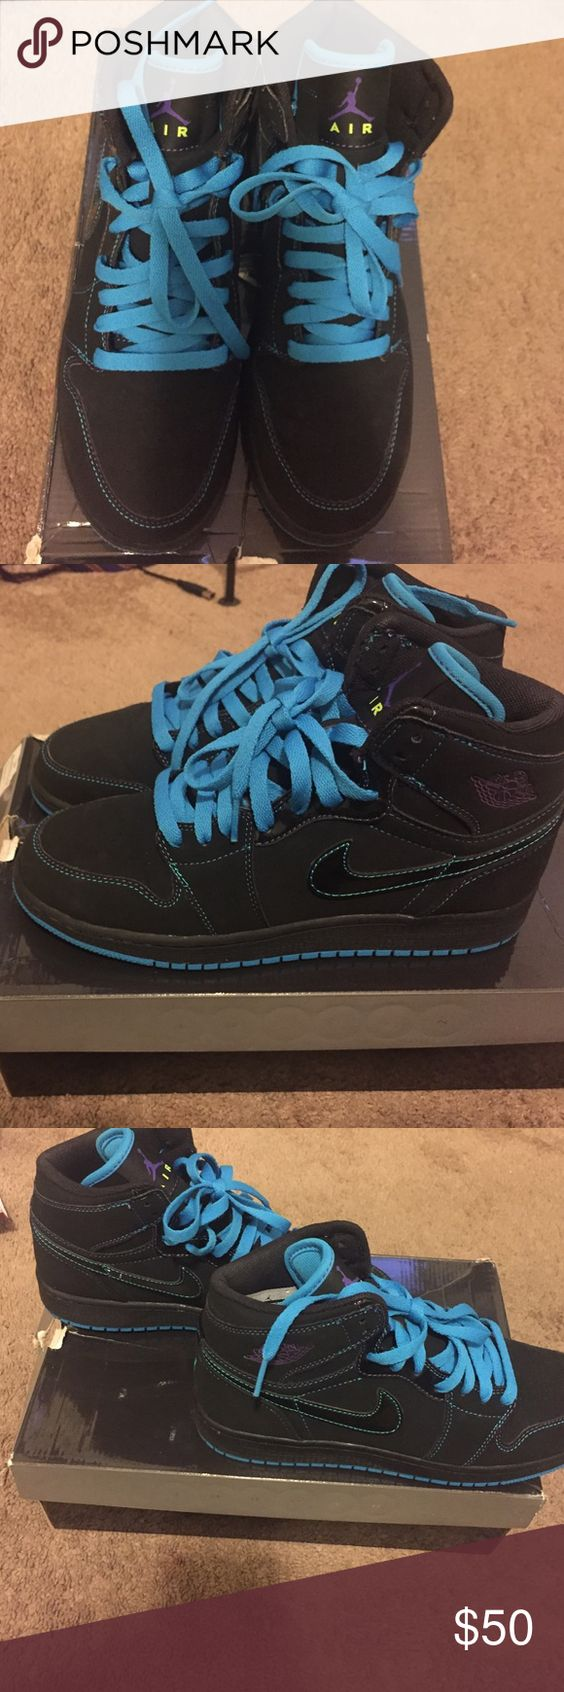 Kids Jordans Great Condition . Size 6.5 No Flaws at all. Worn once Jordan Shoes Sneakers